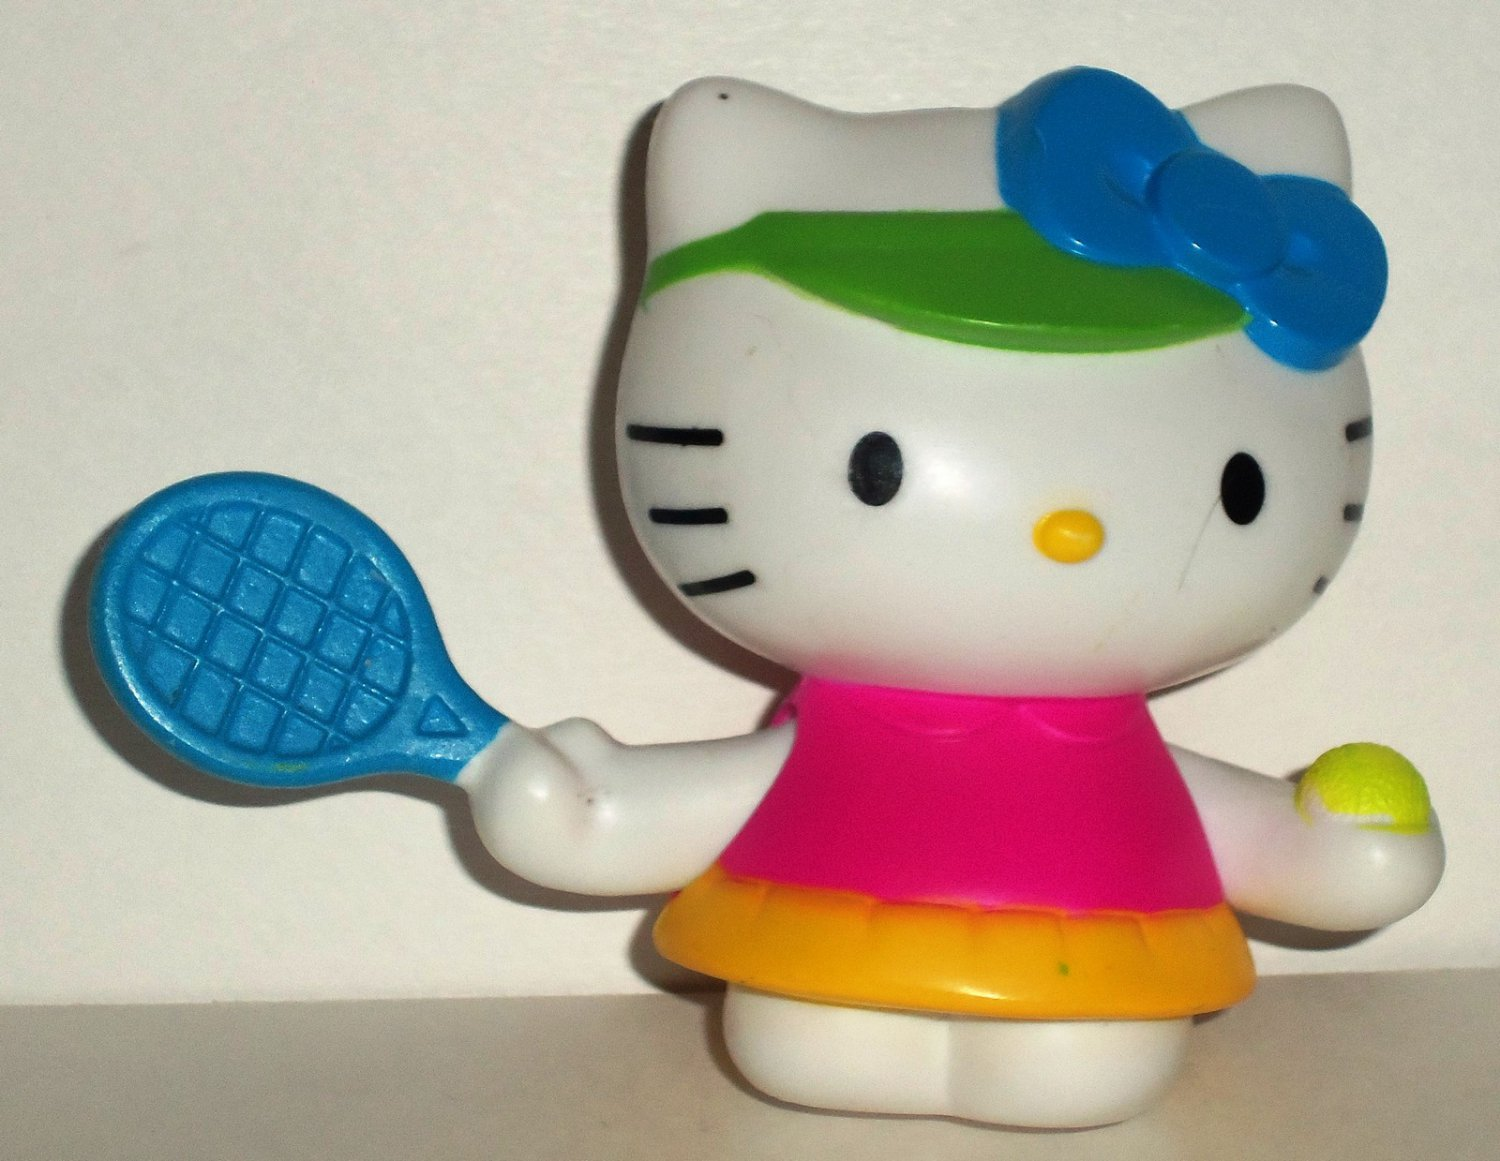 Mcdonald S Happy Meal Toys 2013 : Mcdonald s hello kitty loves tennis happy meal toy